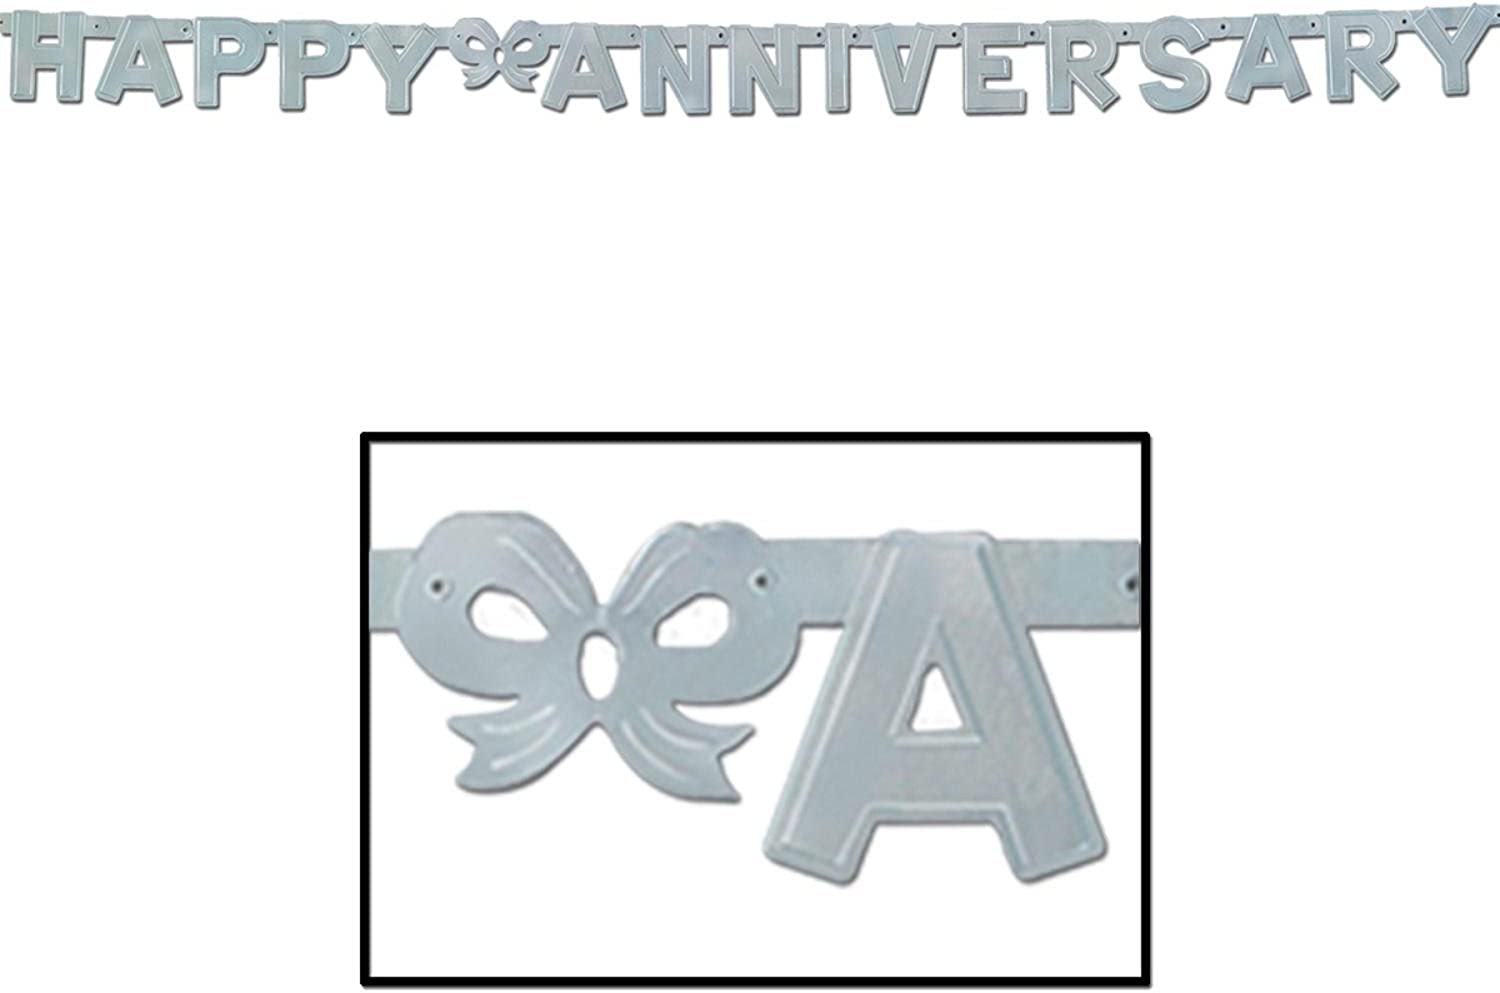 Club Pack of 12 Silver Foil Happy Anniversary  Jointed Streamer Party Decorations 6'